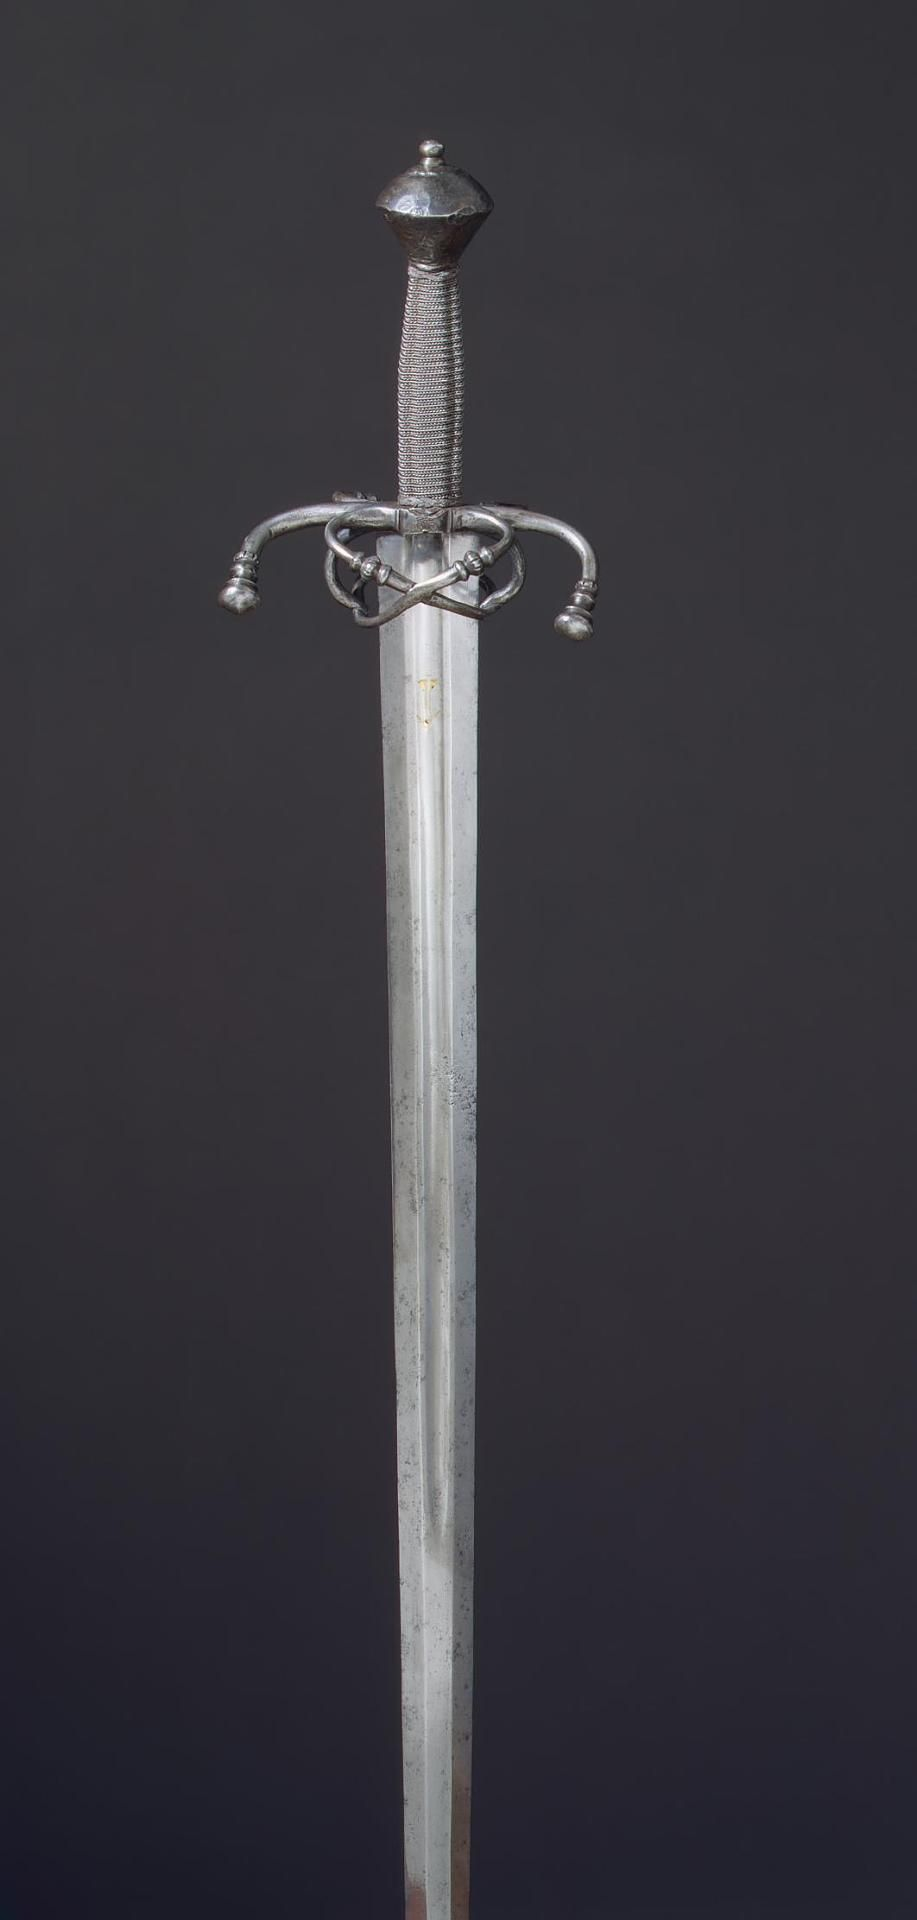 Sword Germany, First half of the 16th century L. 119 cm, blade 100 cm